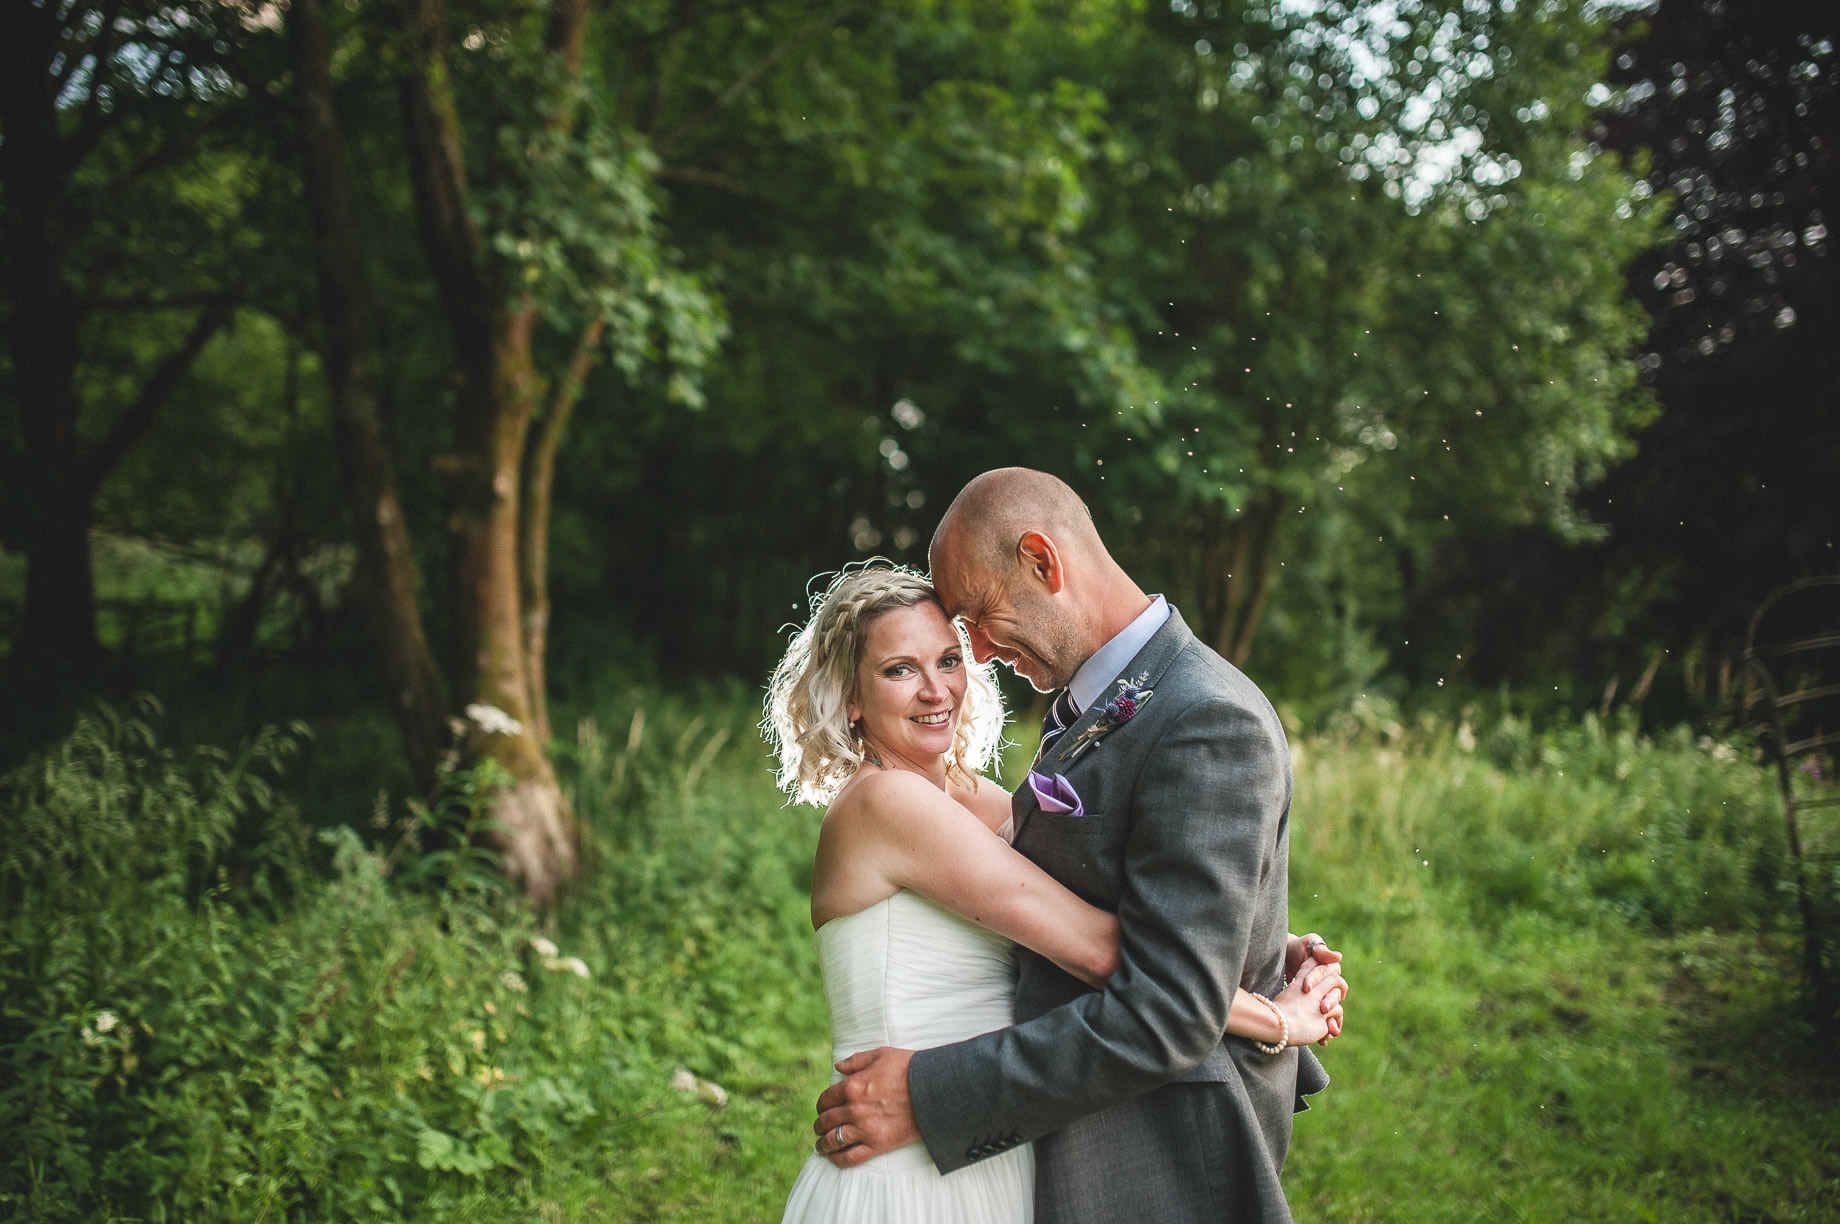 Tess and Paul's Wedding at The Inn at Whitewell 125